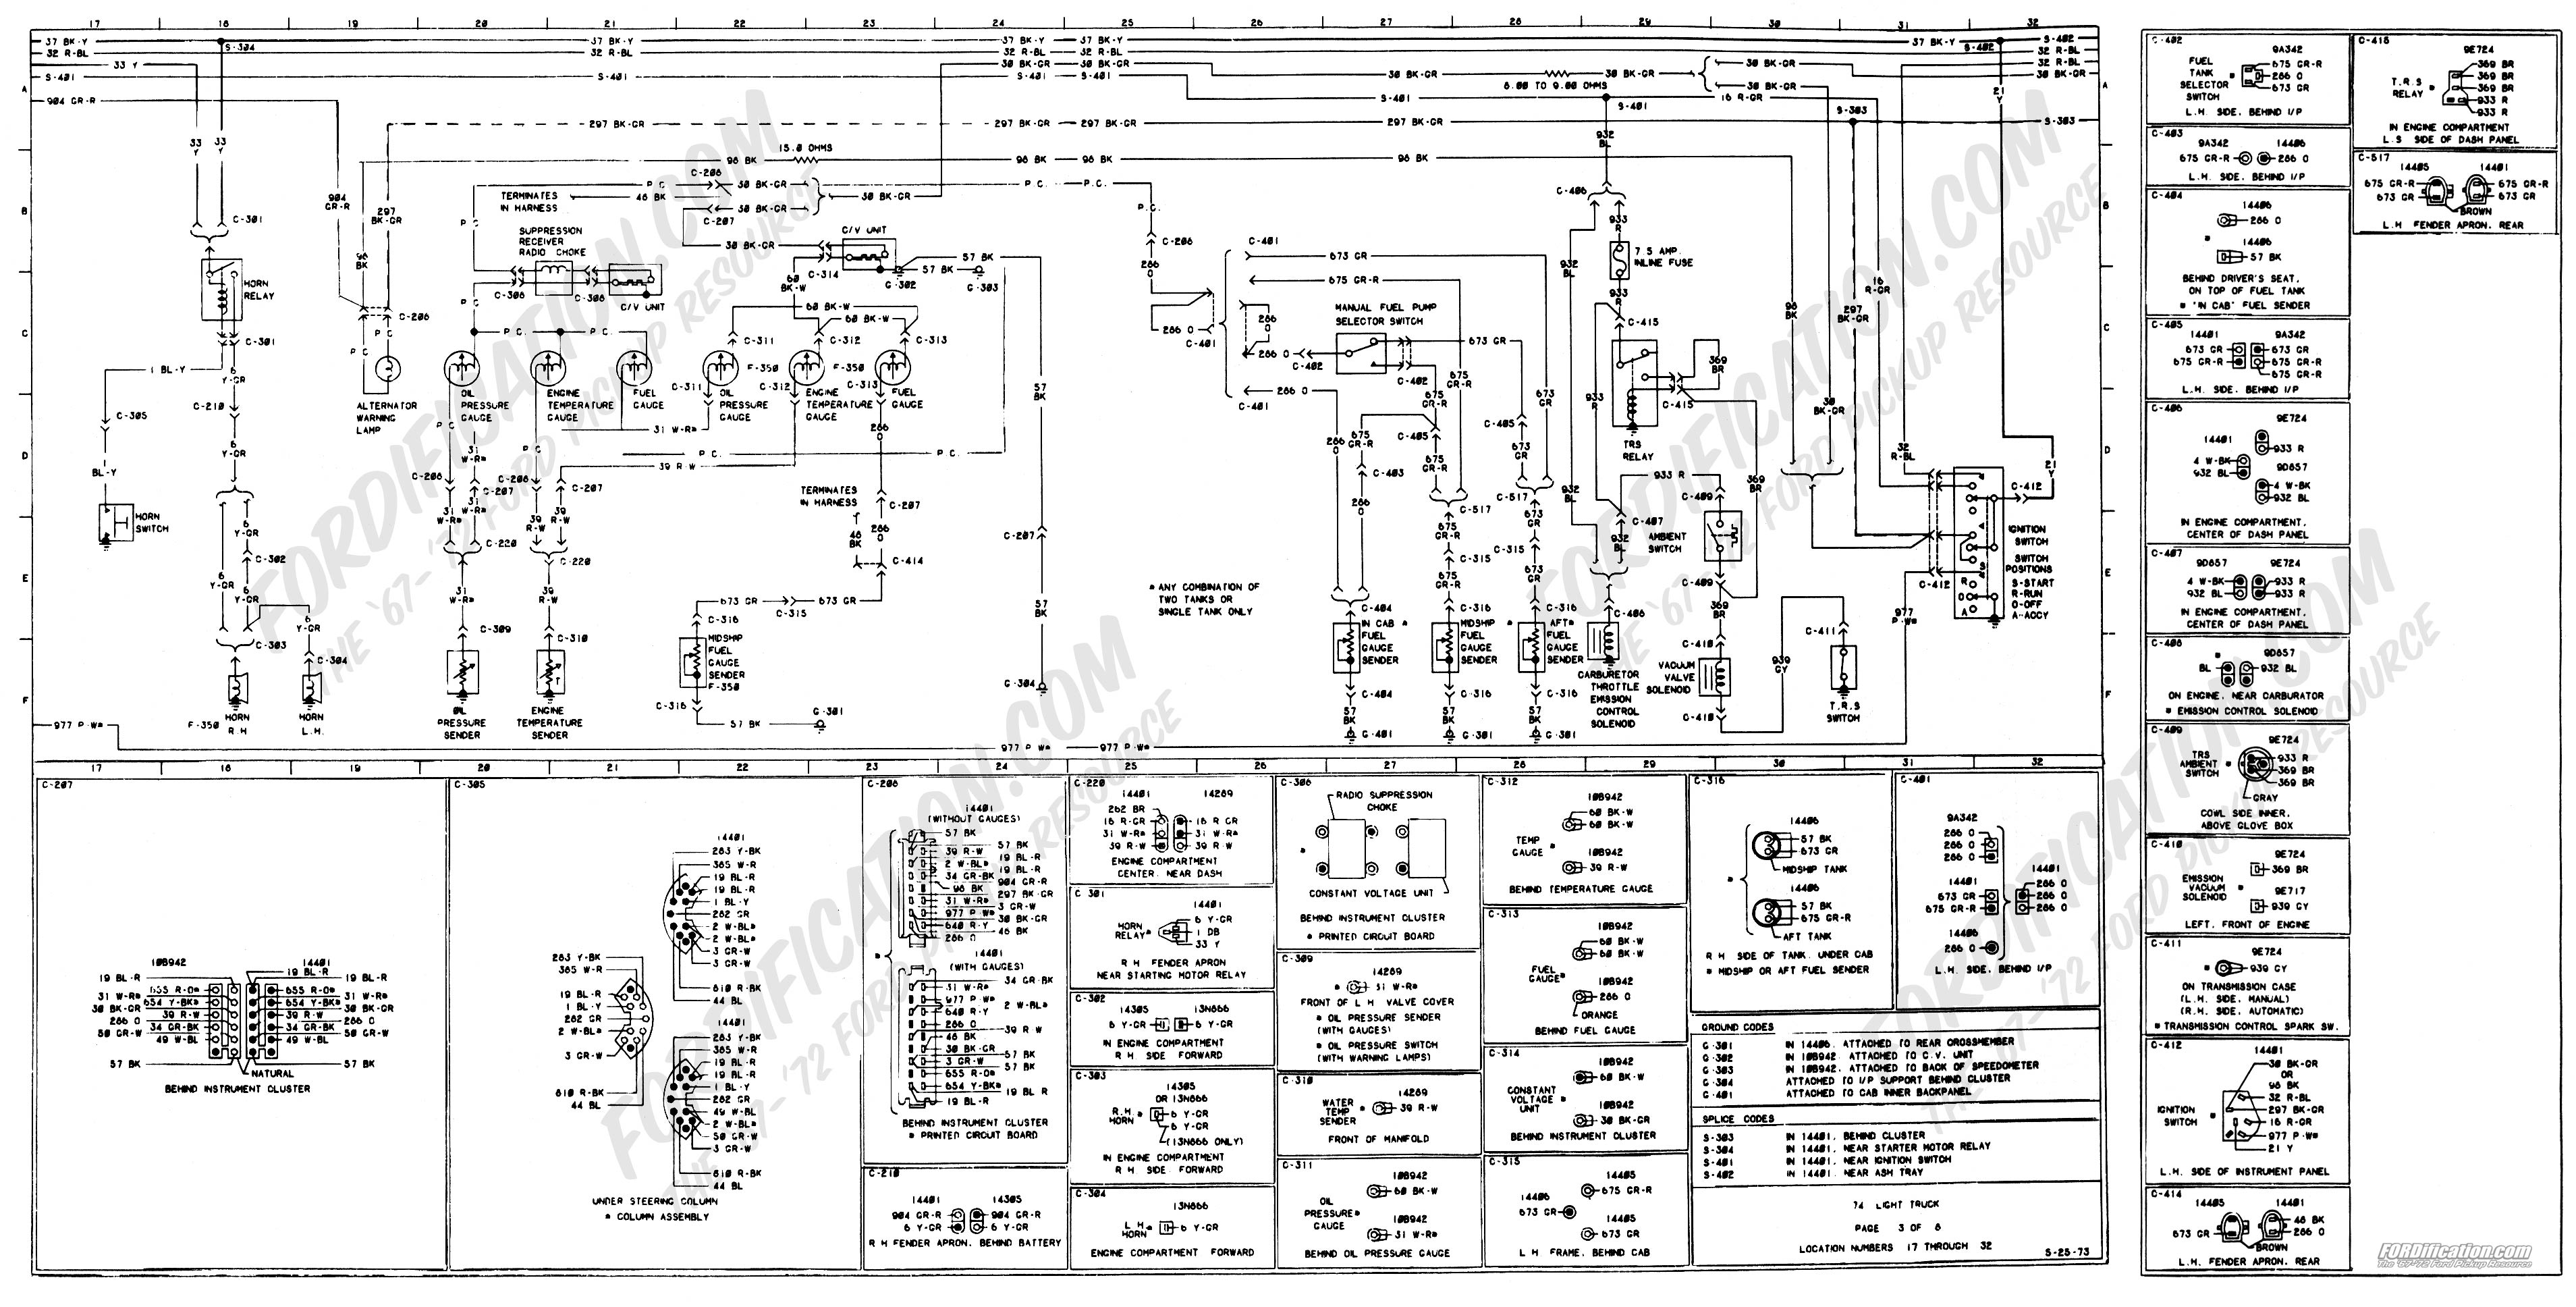 wiring_74master_3of8 1973 1979 ford truck wiring diagrams & schematics fordification net 1994 ford f250 diesel engine wiring harness at mifinder.co